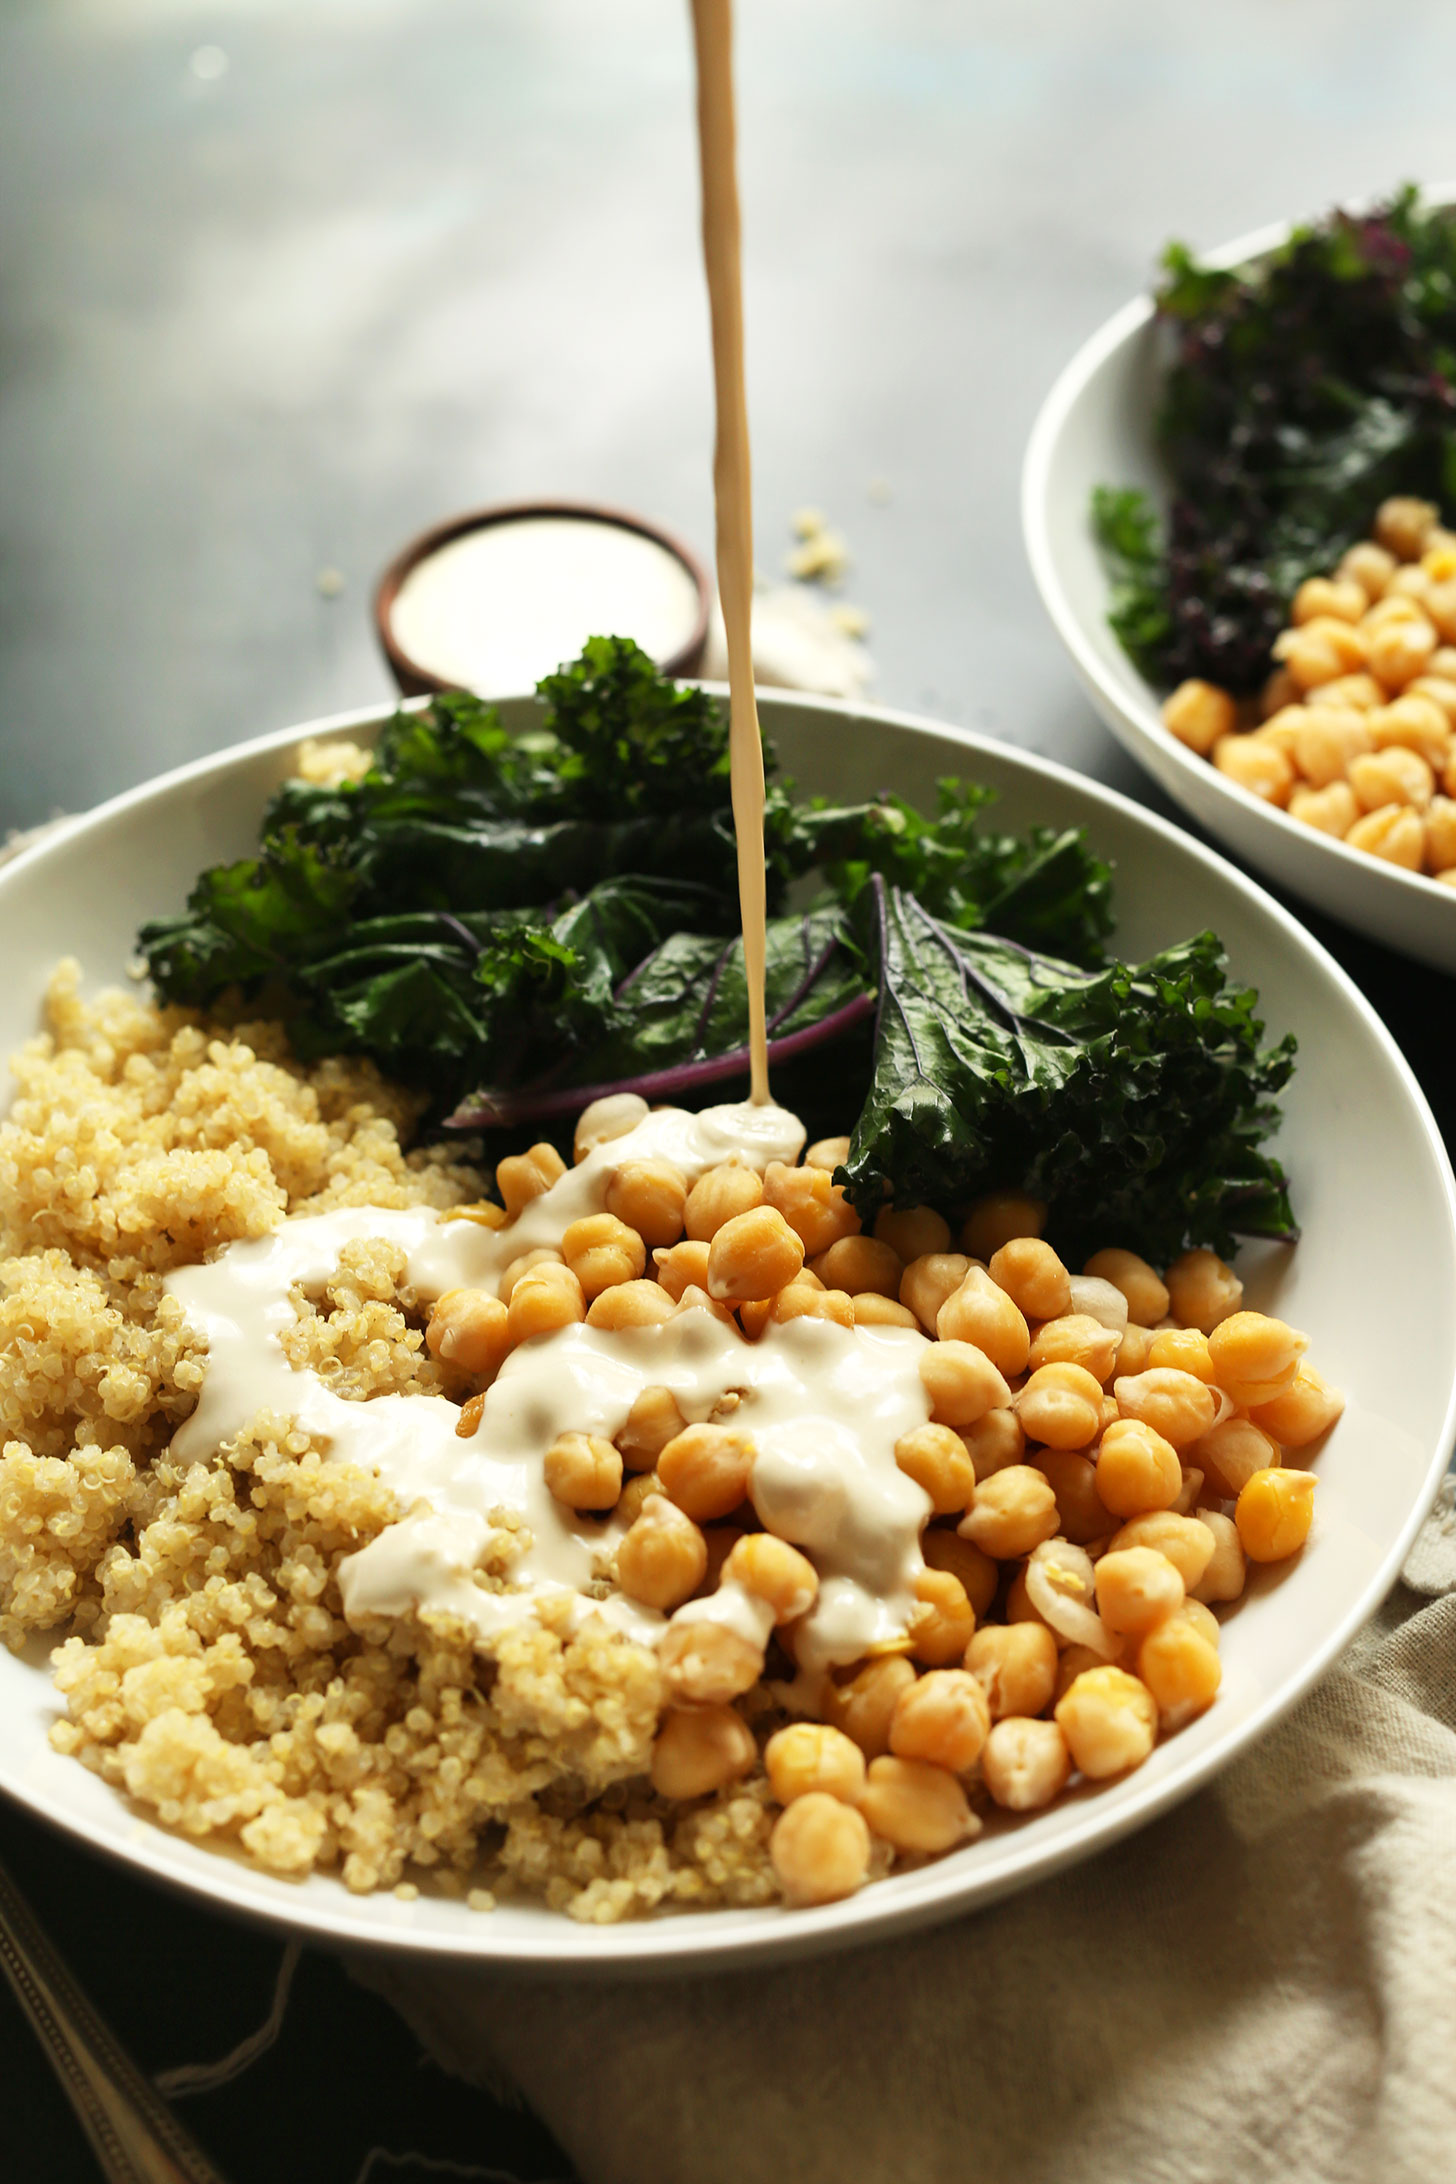 Pouring Tahini Sauce onto our Quinoa Chickpea Buddha Bowls for a simple gluten-free vegan meal